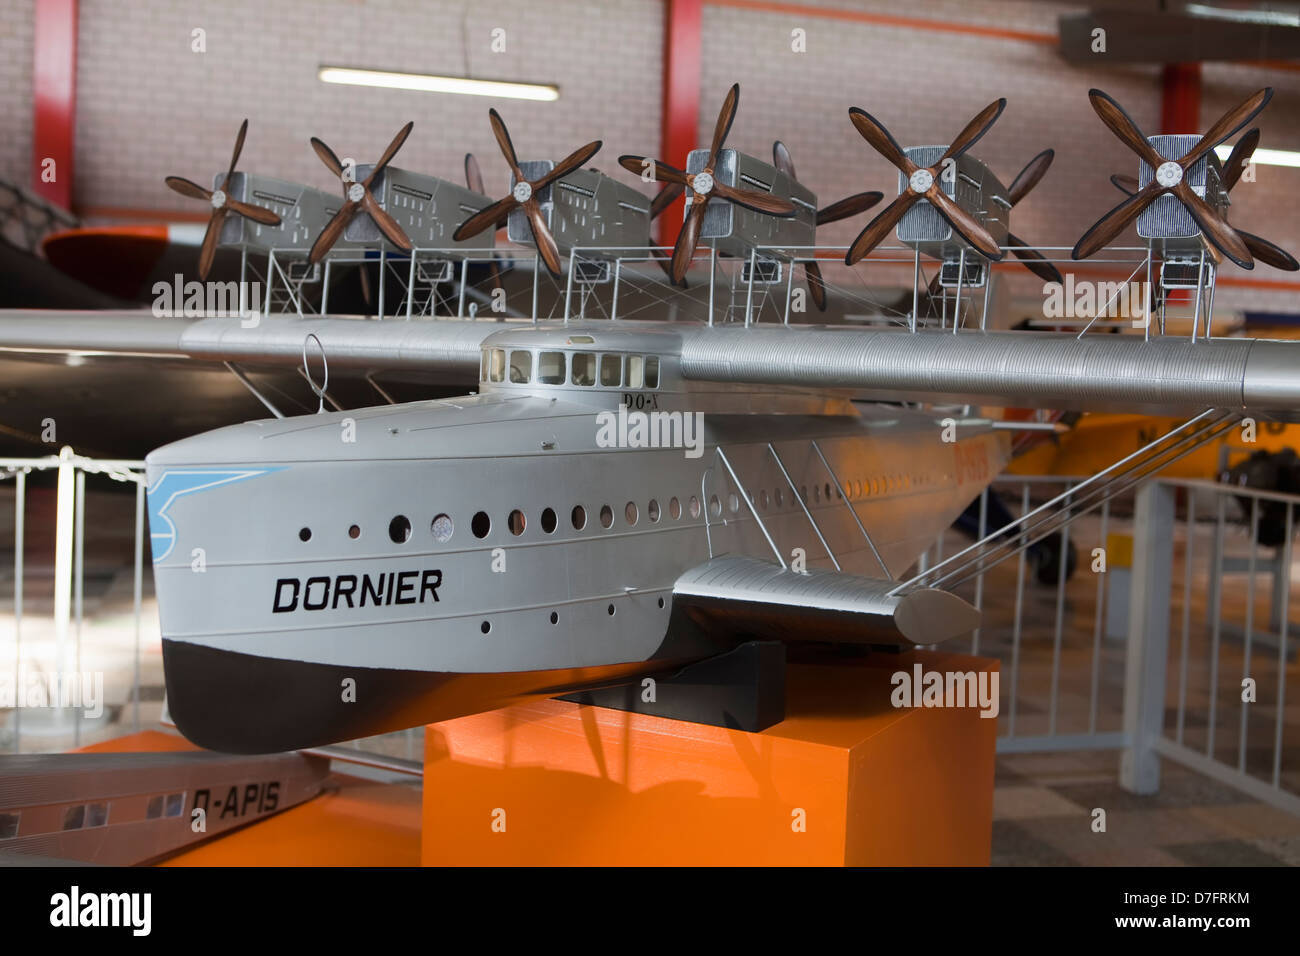 Model of the passenger aircraft Dornier Do X, Aircraft Collection Hermeskeil, Germany, Europe - Stock Image